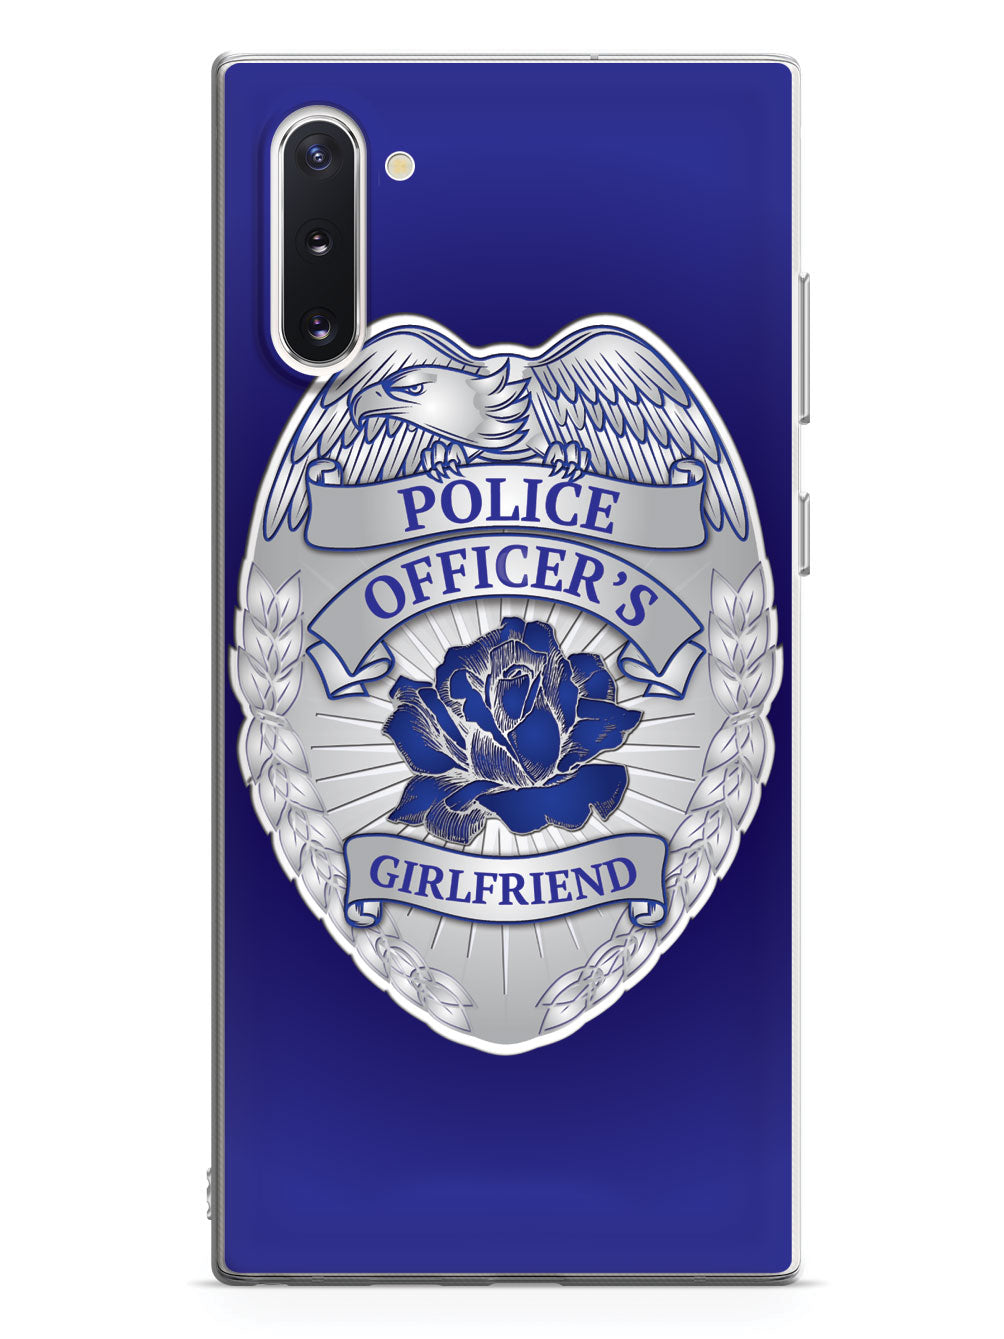 Police Officer's Girlfriend Badge Case